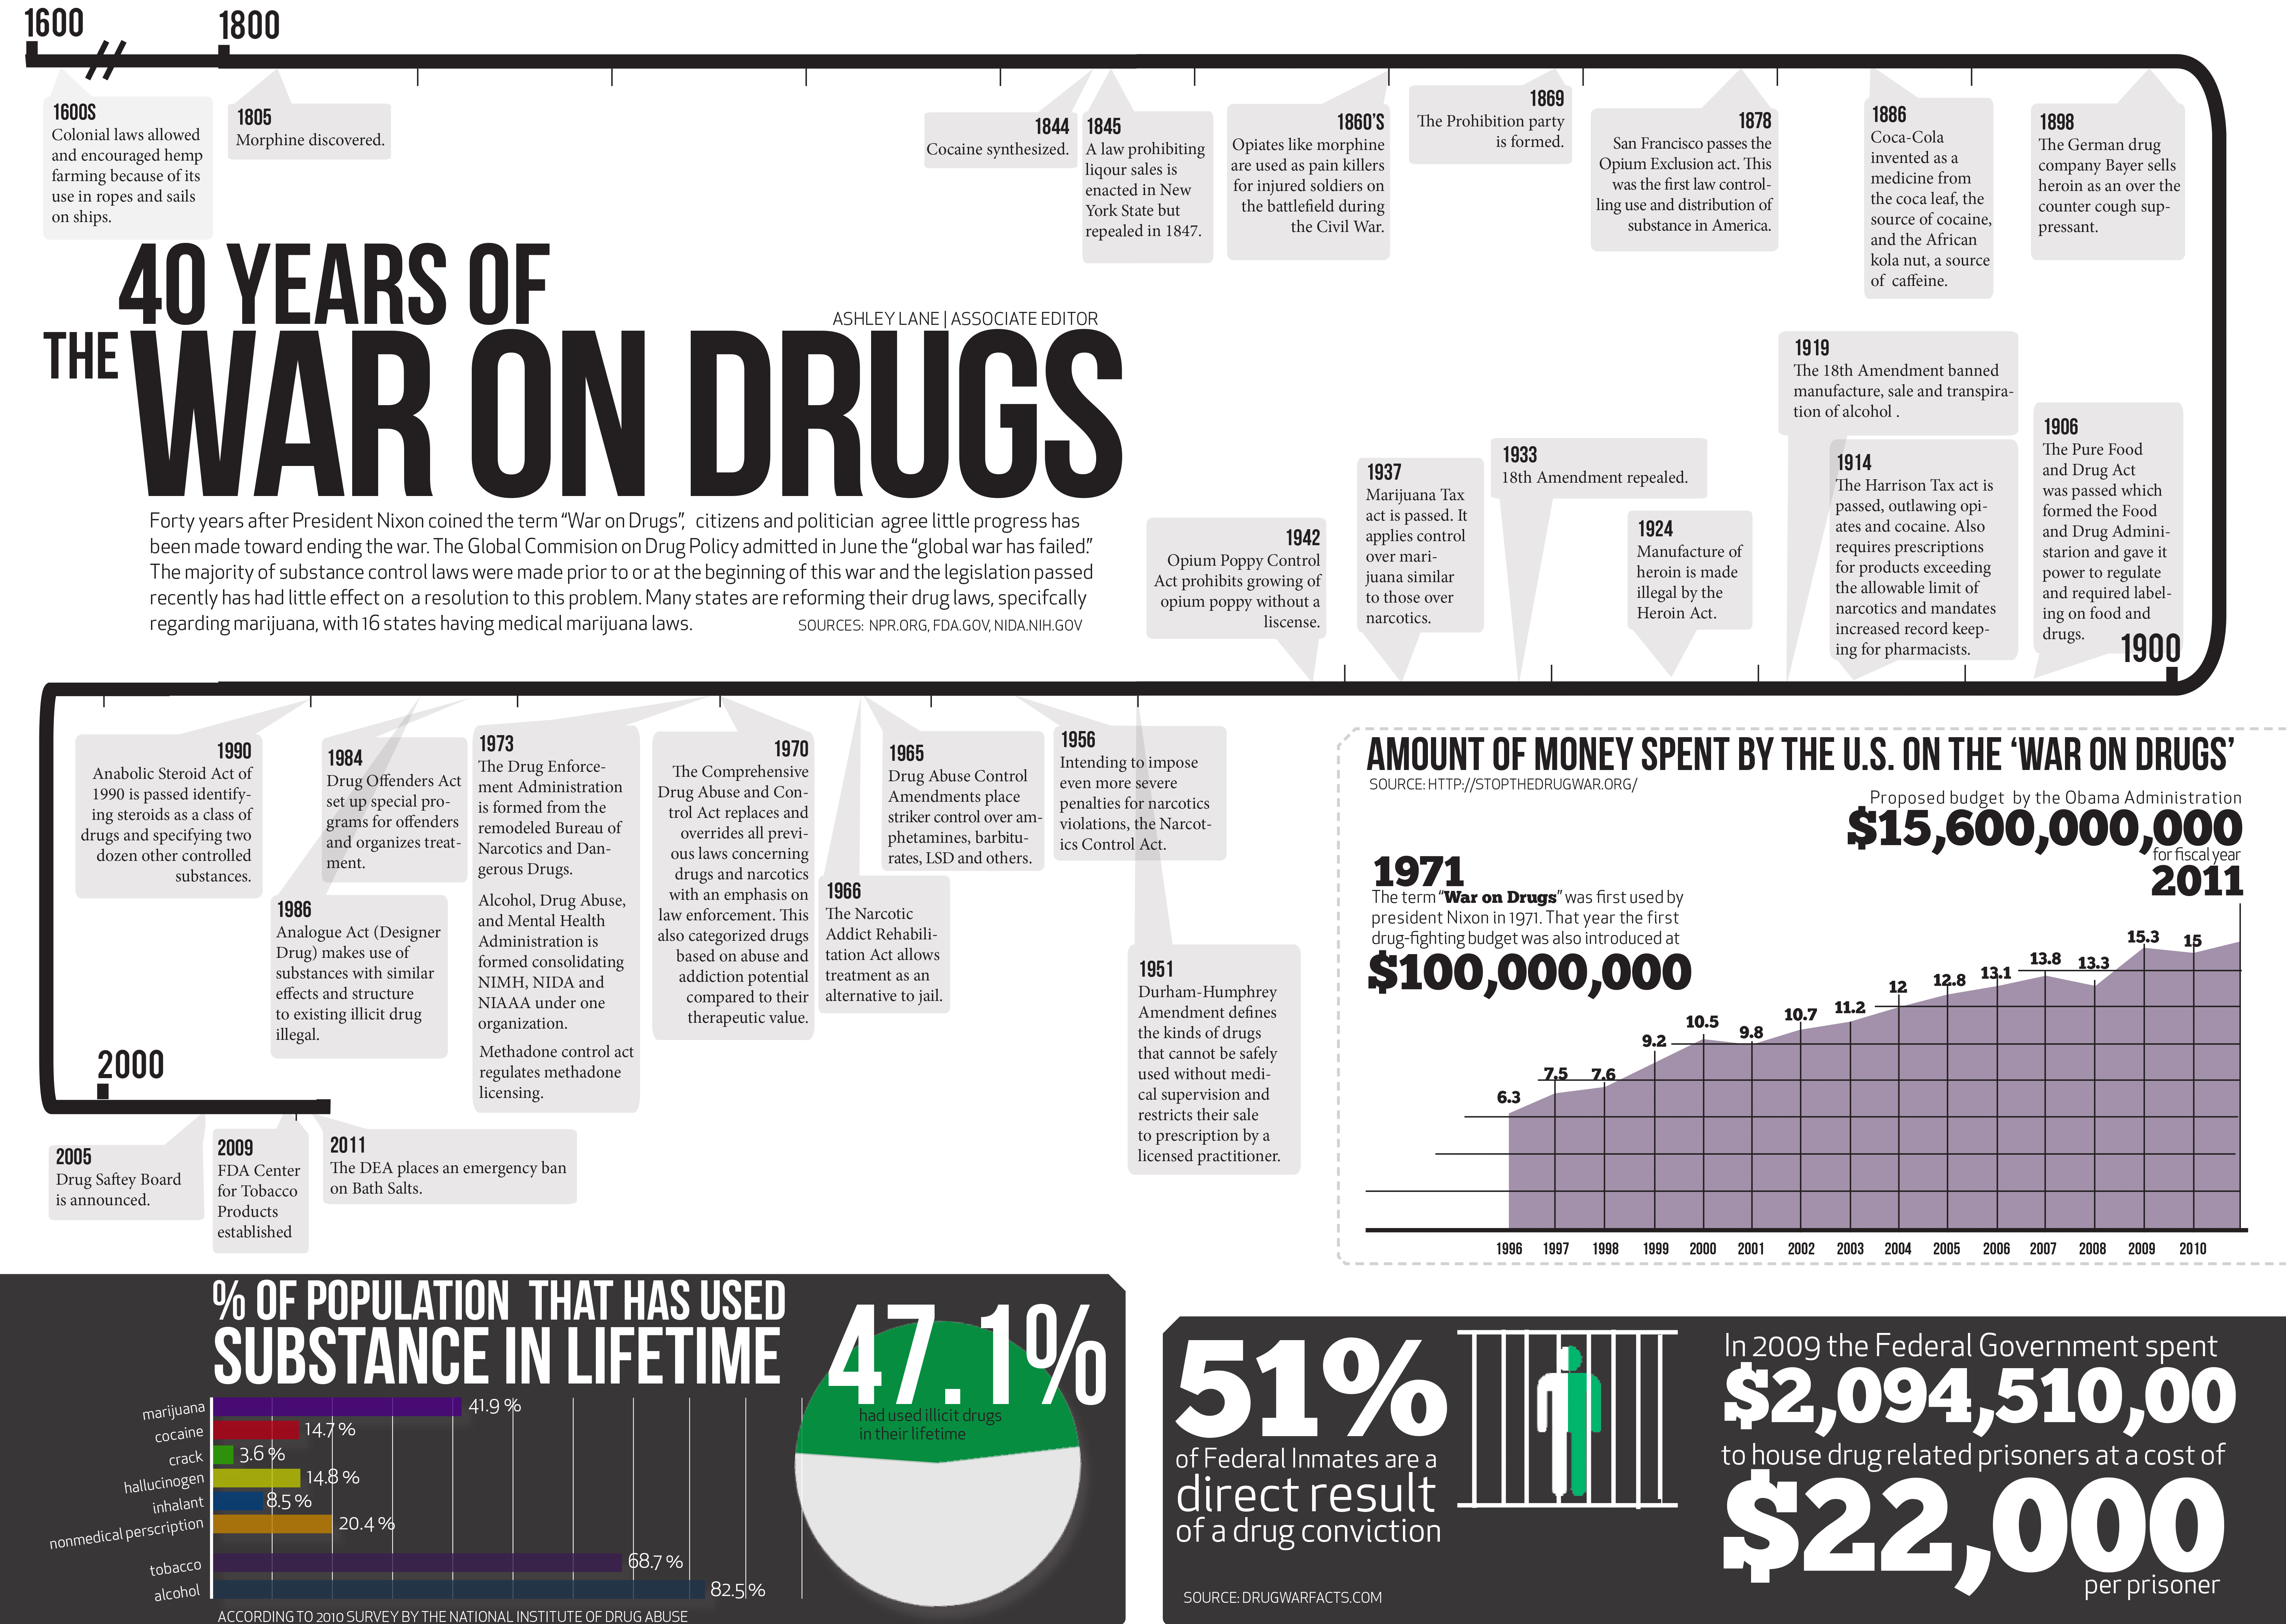 """an analysis of the topic of the war on drugs for the united states Presents a concise, accessible, objective view of where the united states has been, now stands, and is going in the future in its long """"war on drugs""""."""